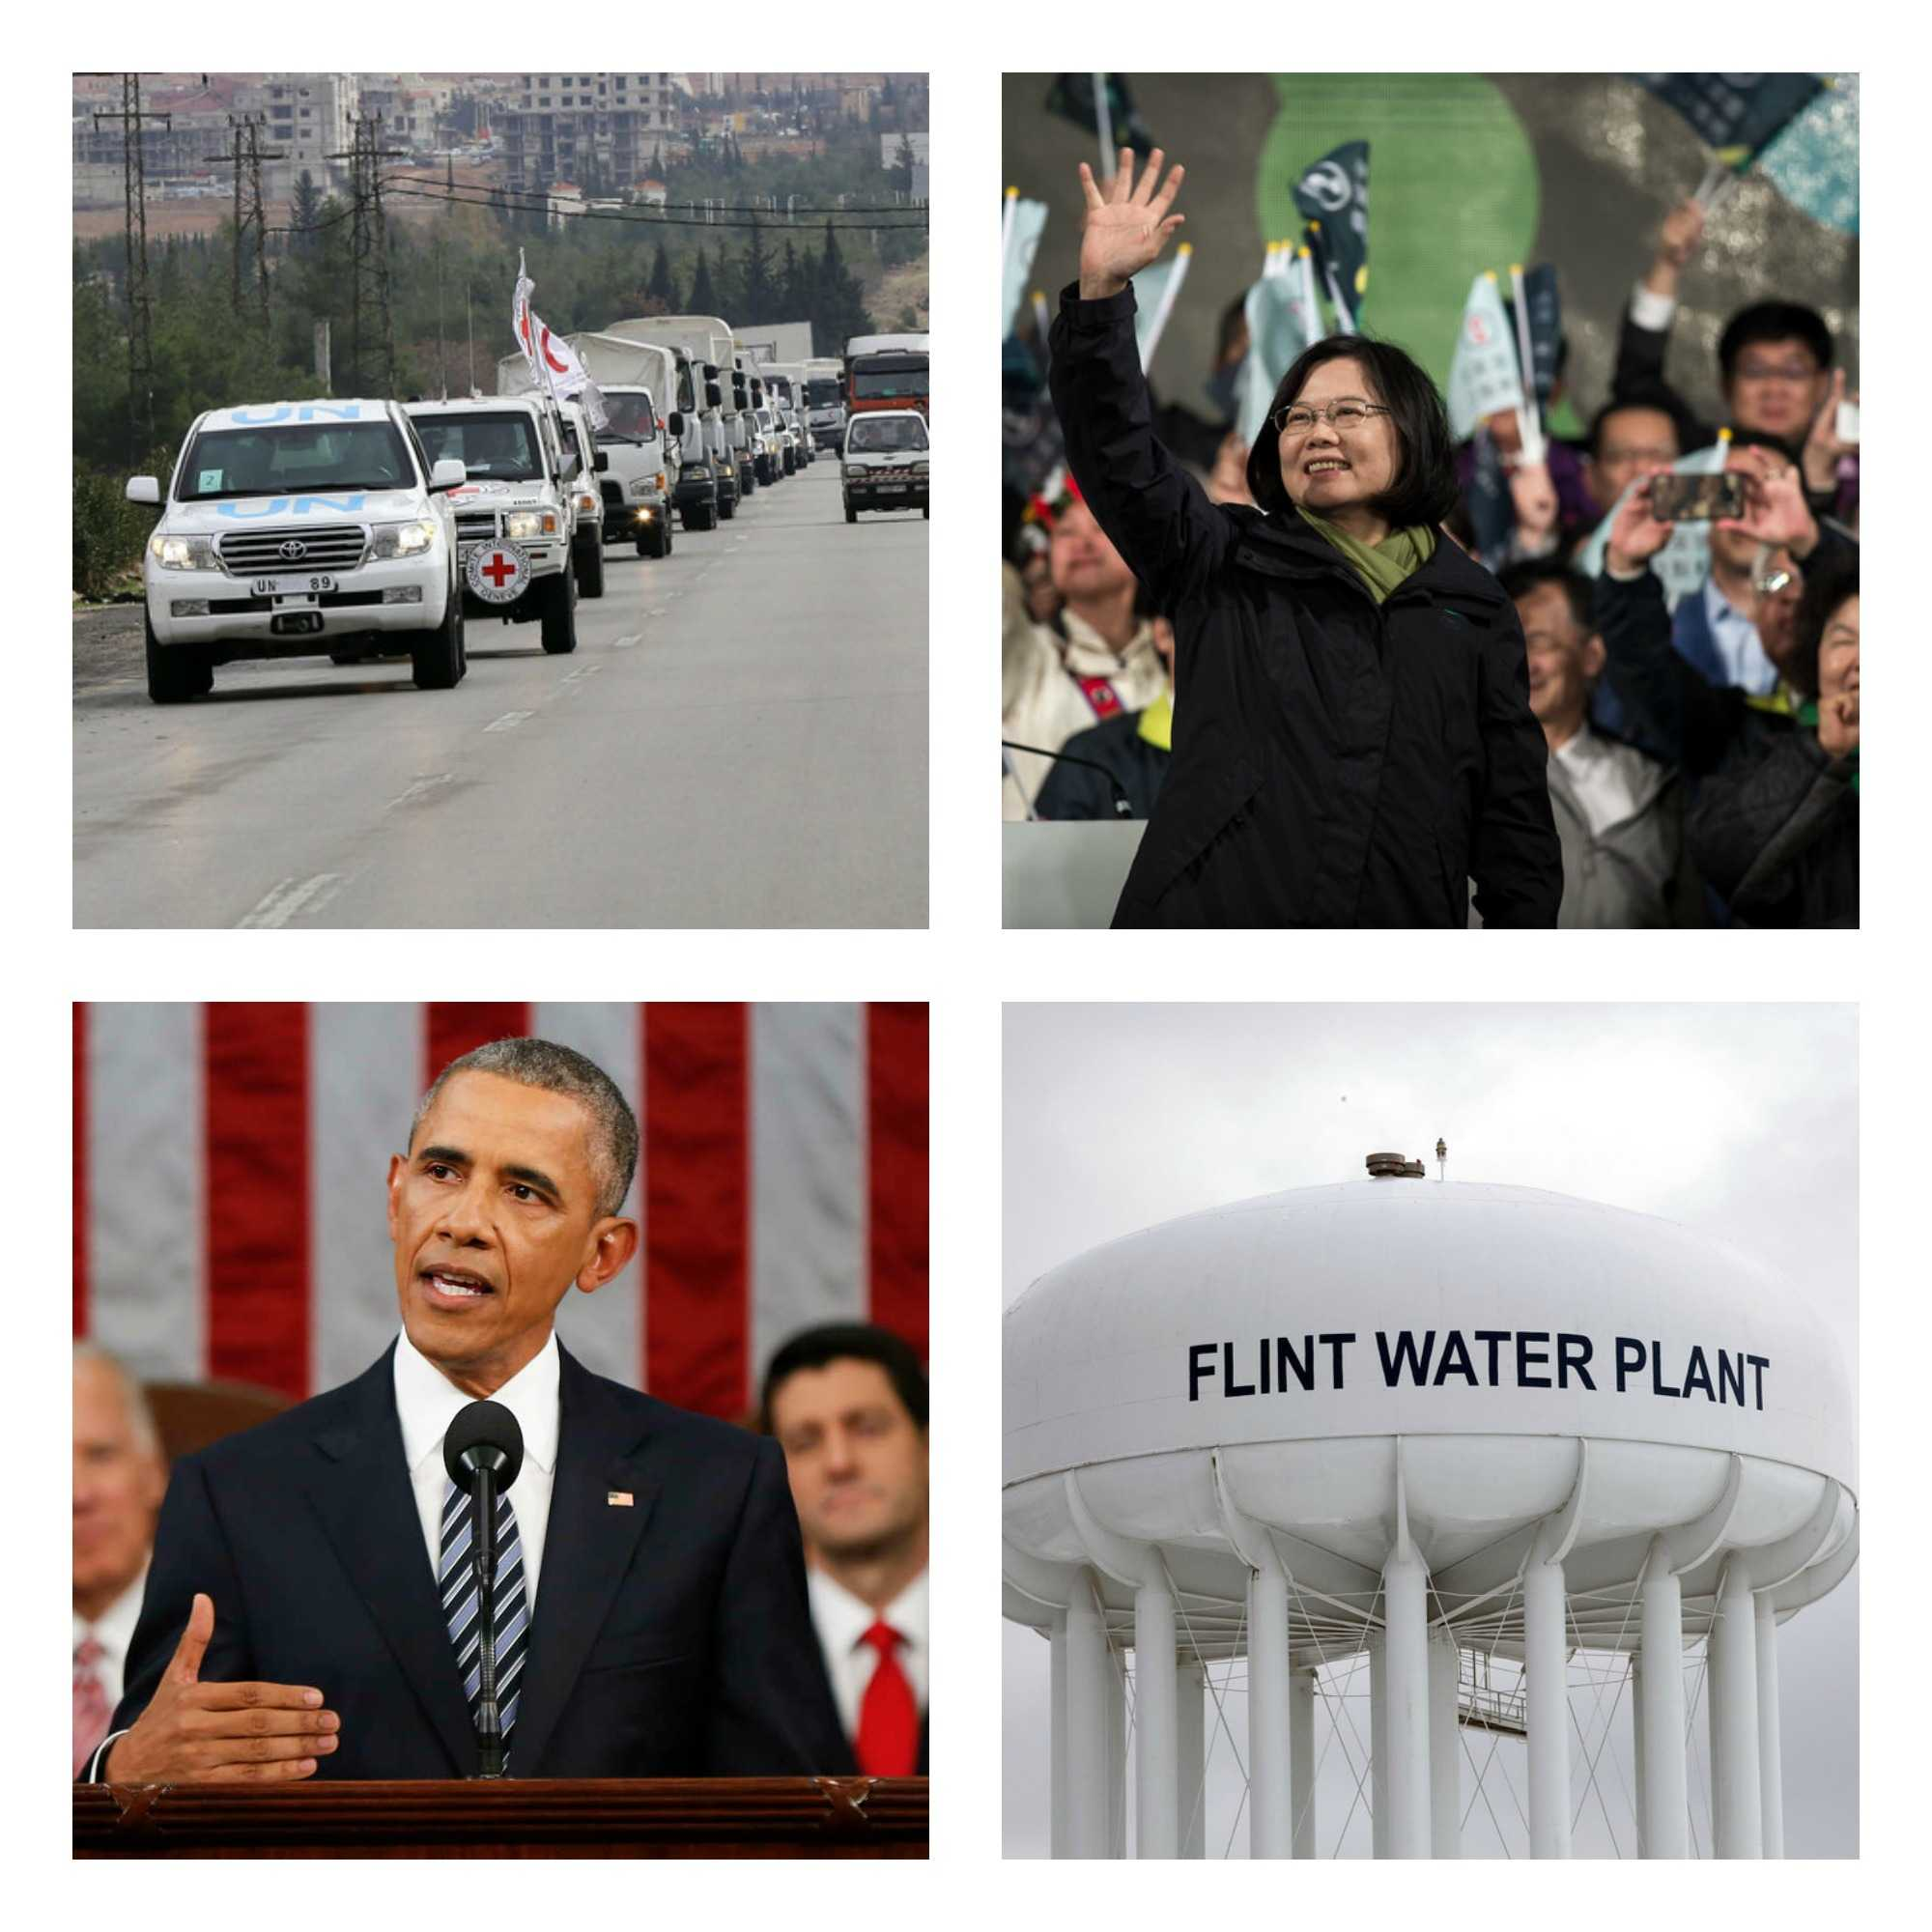 UN convoy reaches Madaya, Taiwan elects first female president, Obama's final State of the Union address and Flint's water crisis in this week's recap.